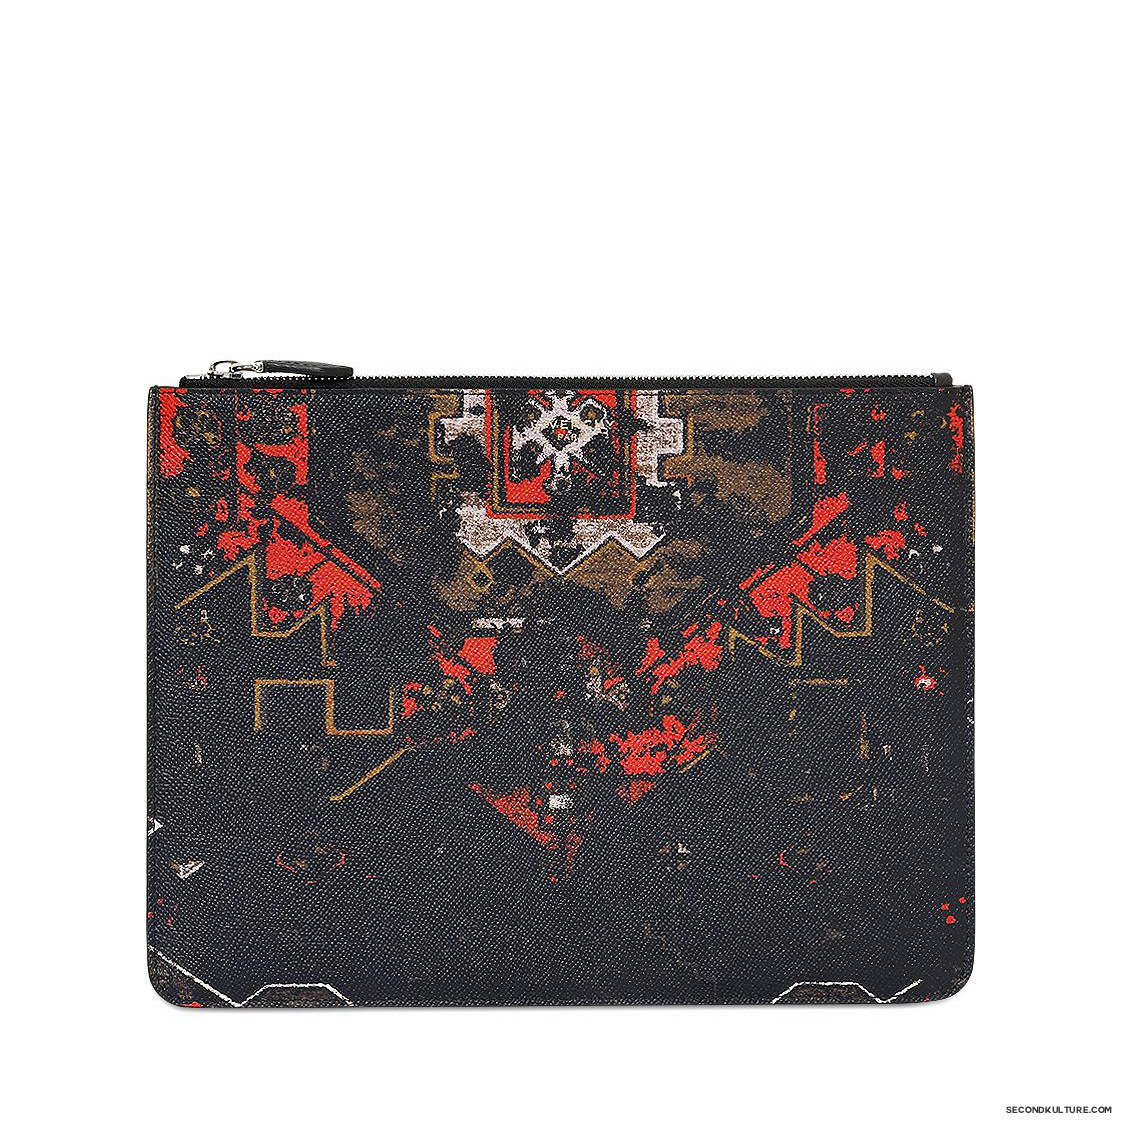 Givenchy-Native-American-Carpet-Degraded-Print-Zipped-Leather-Pouch-Fall-Winter-2015-1